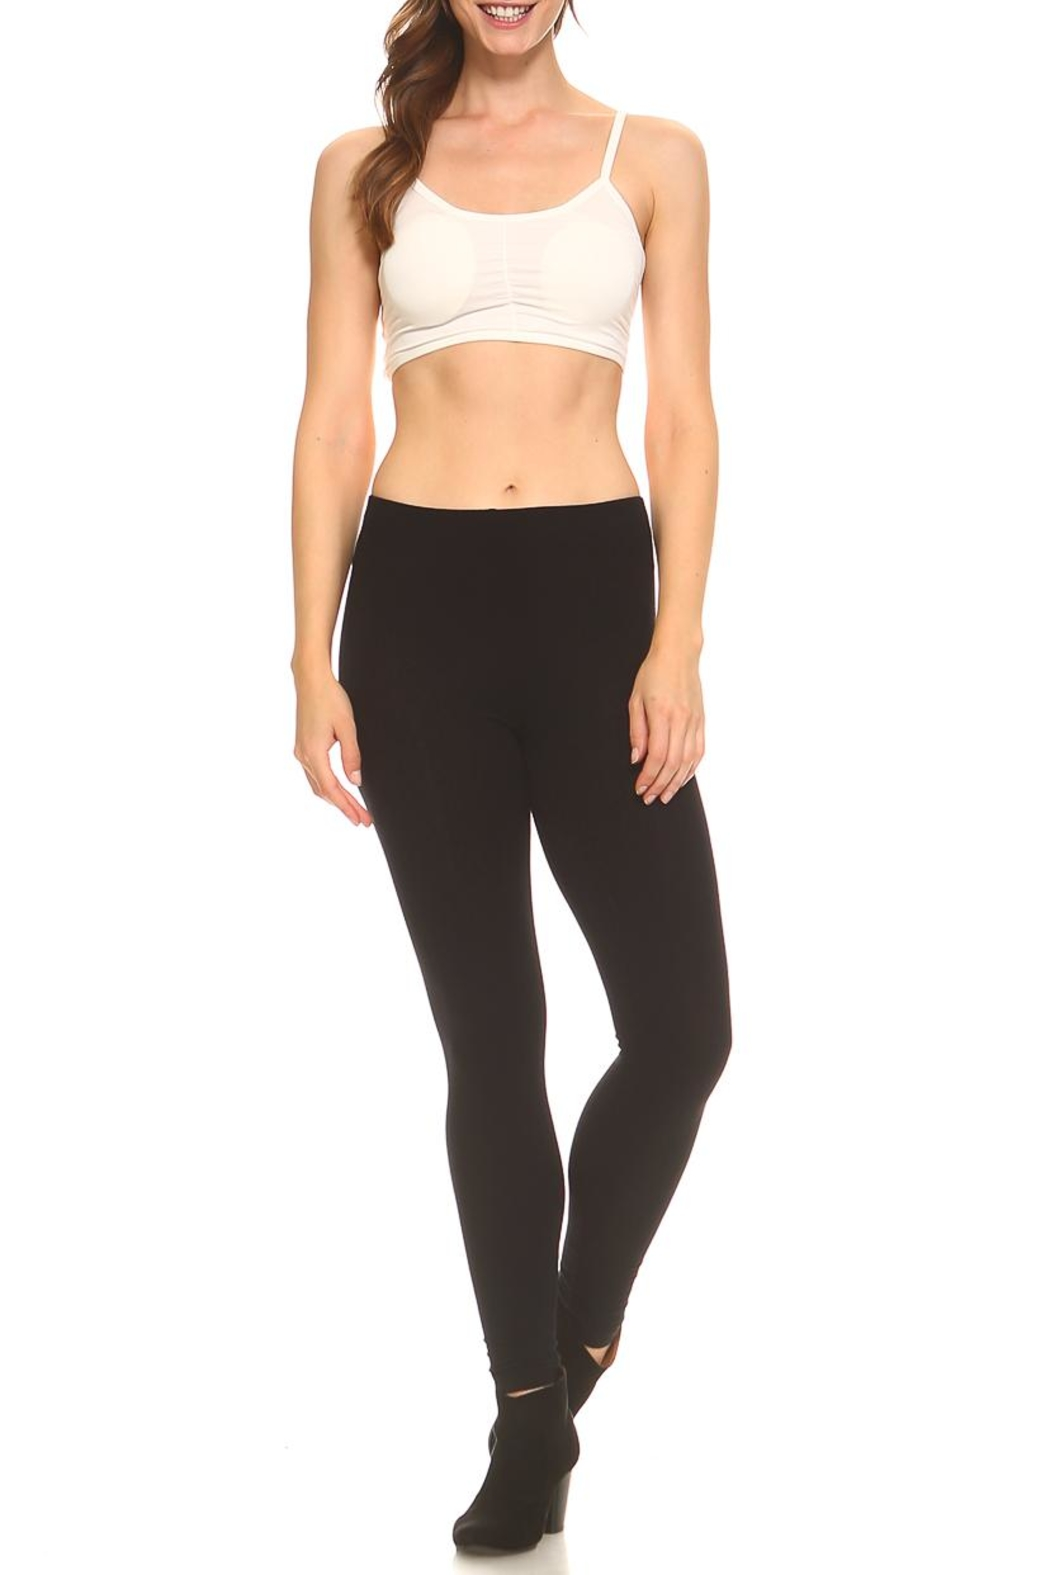 Racine Essential Seamless Bralette - Side Cropped Image